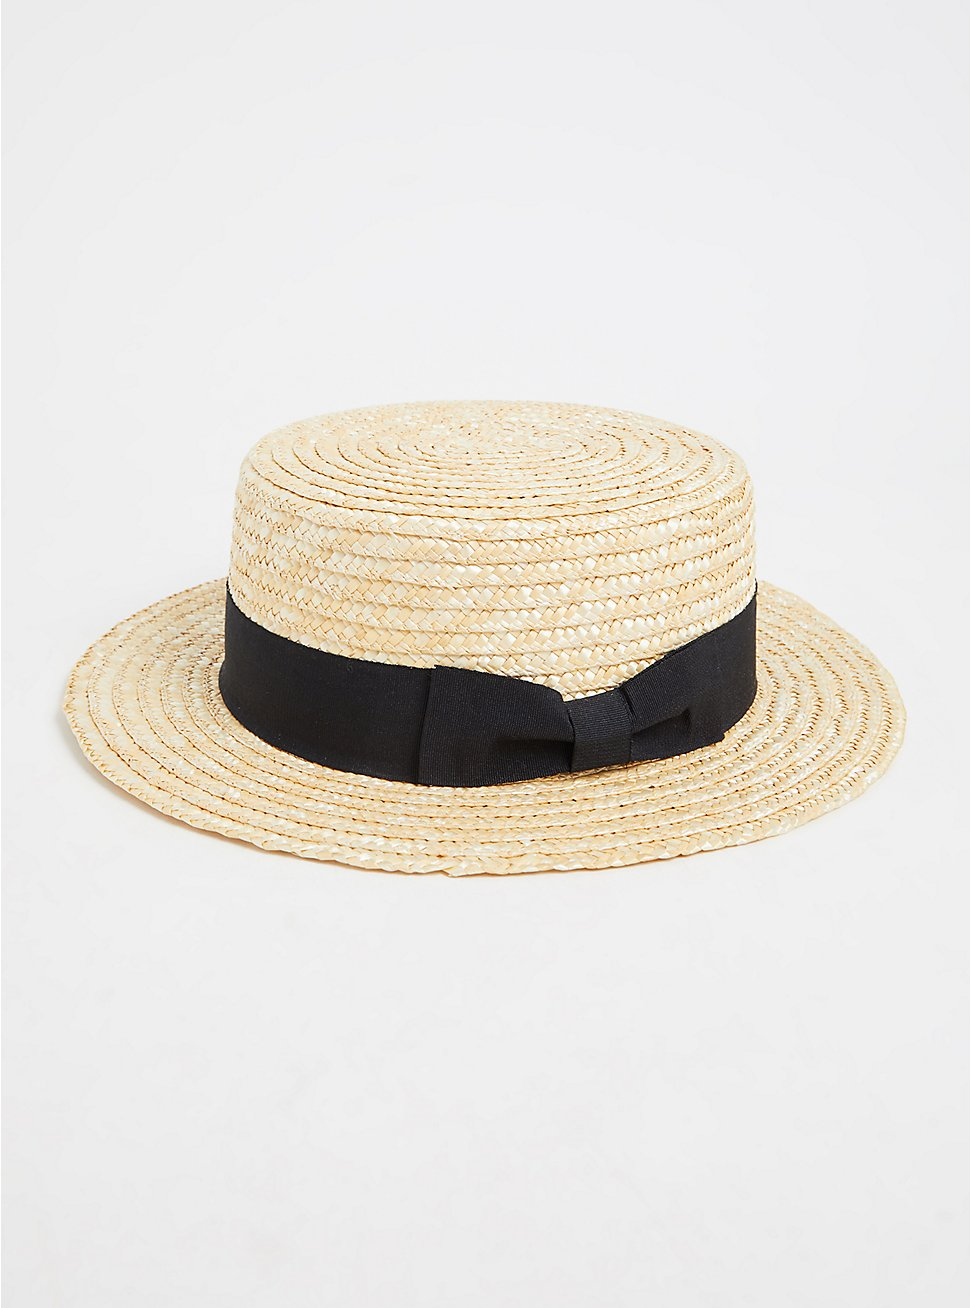 Plus Size Ivory Straw Contrast Band Boater Hat, NATURAL, hi-res